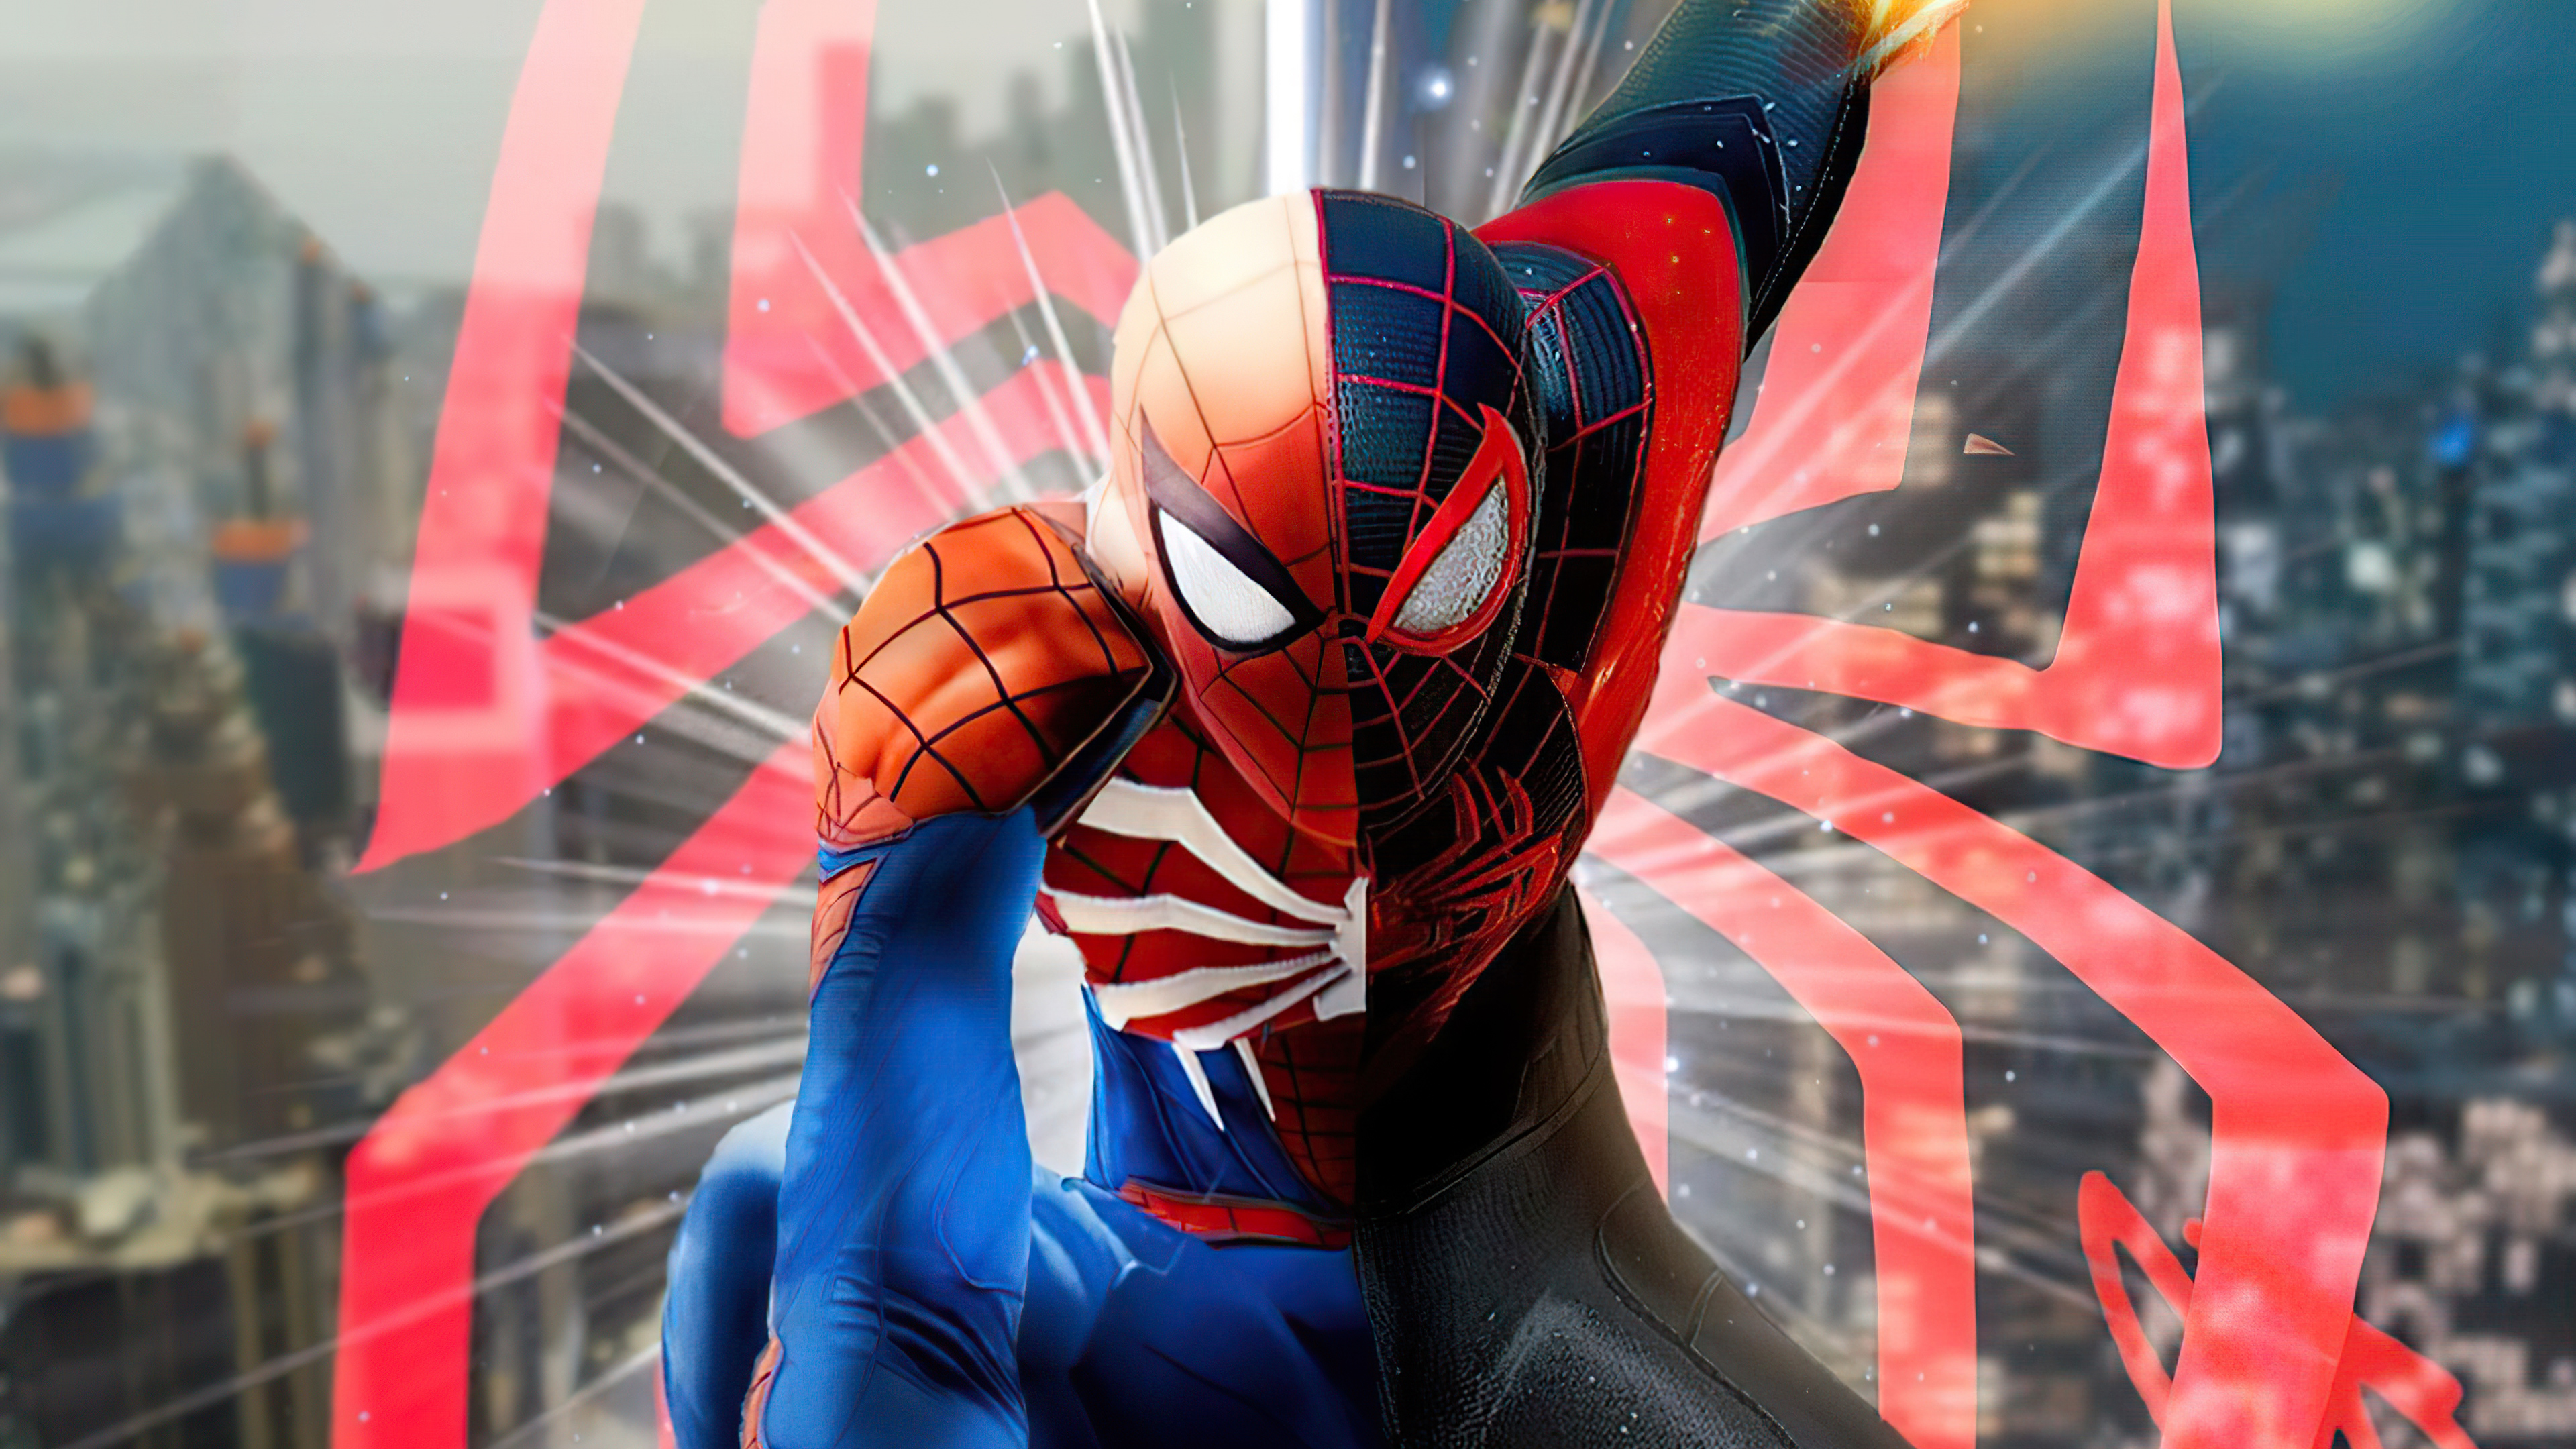 spiderman be great again 4k 1617445731 - Spiderman Be Great Again 4k - Spiderman Be Great Again 4k wallpapers